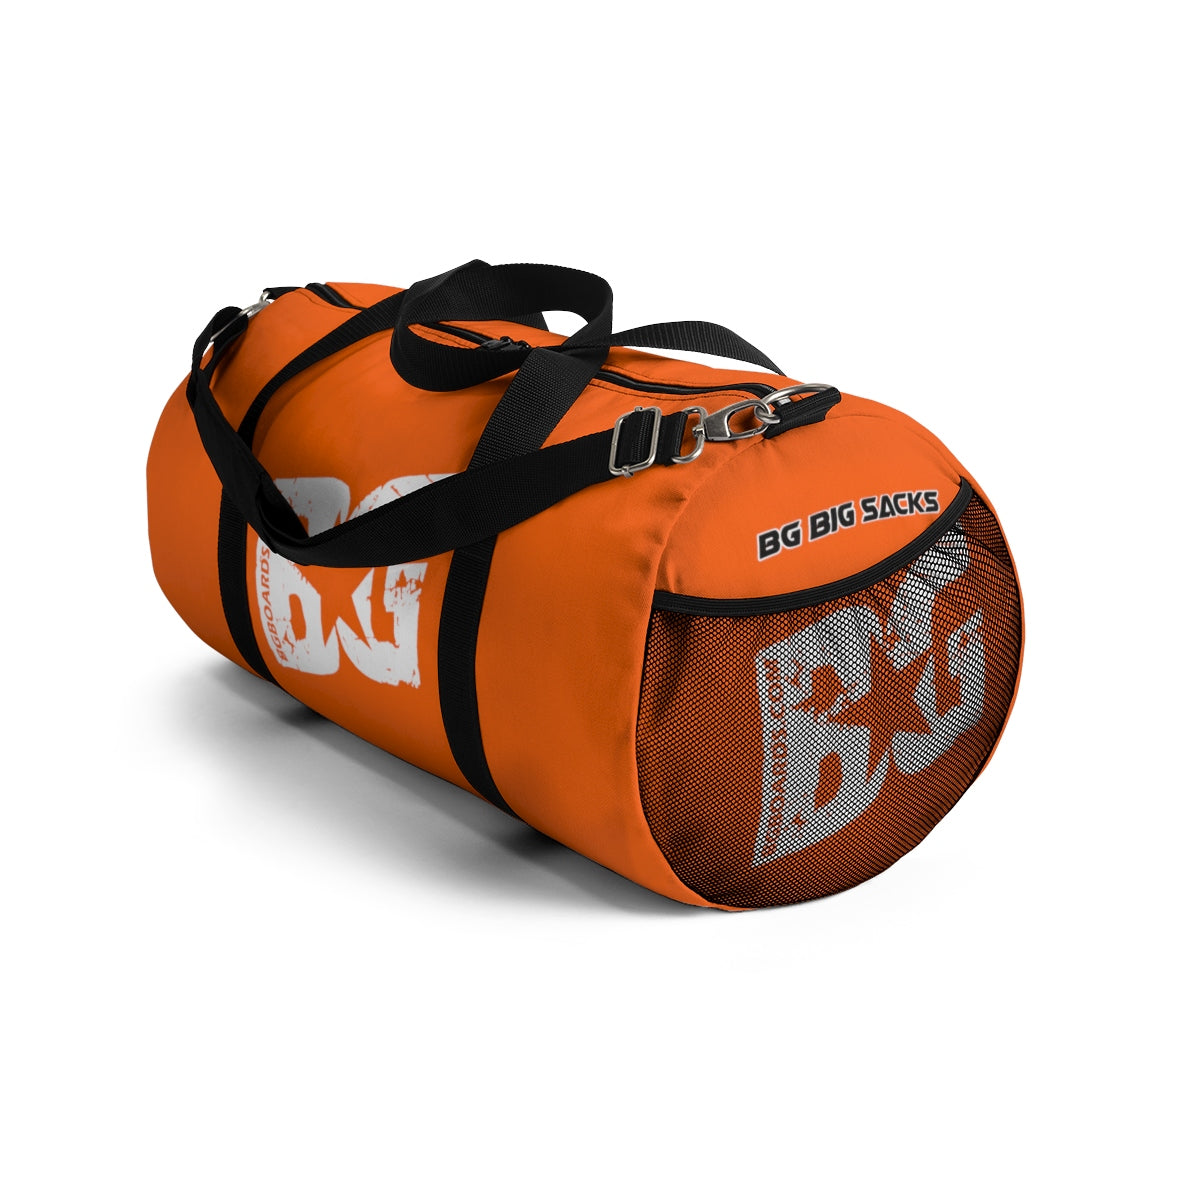 Copy of BG BIG SACK RED DUFFLE BAG